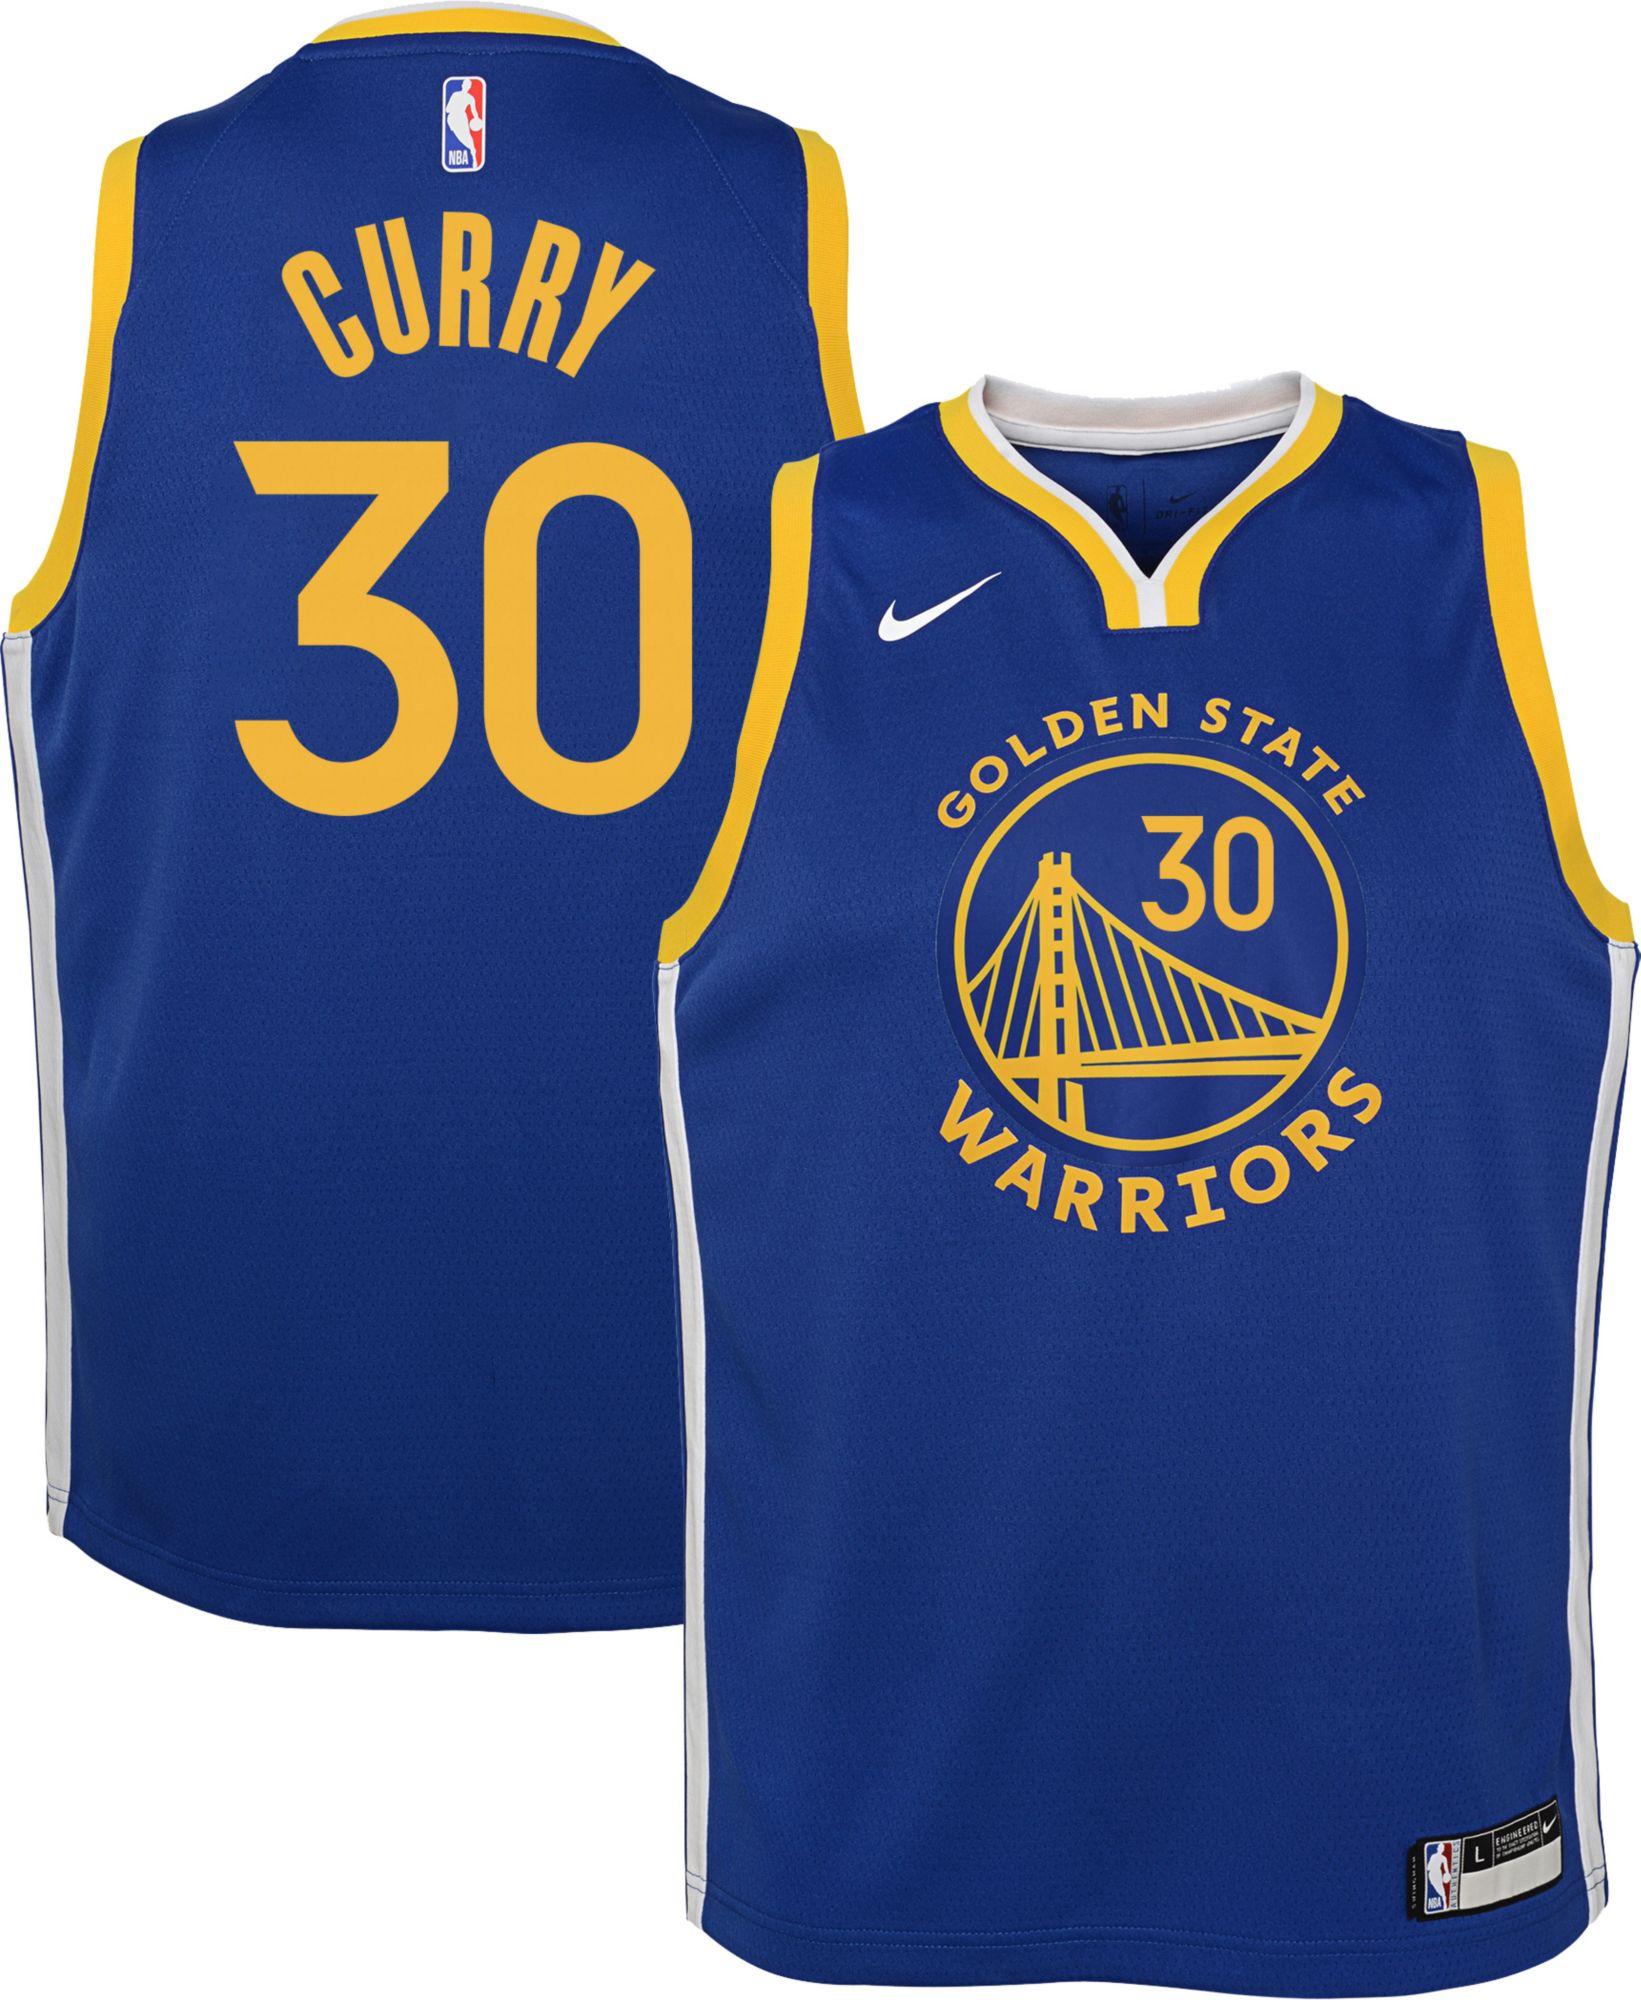 golden state warriors nike jersey